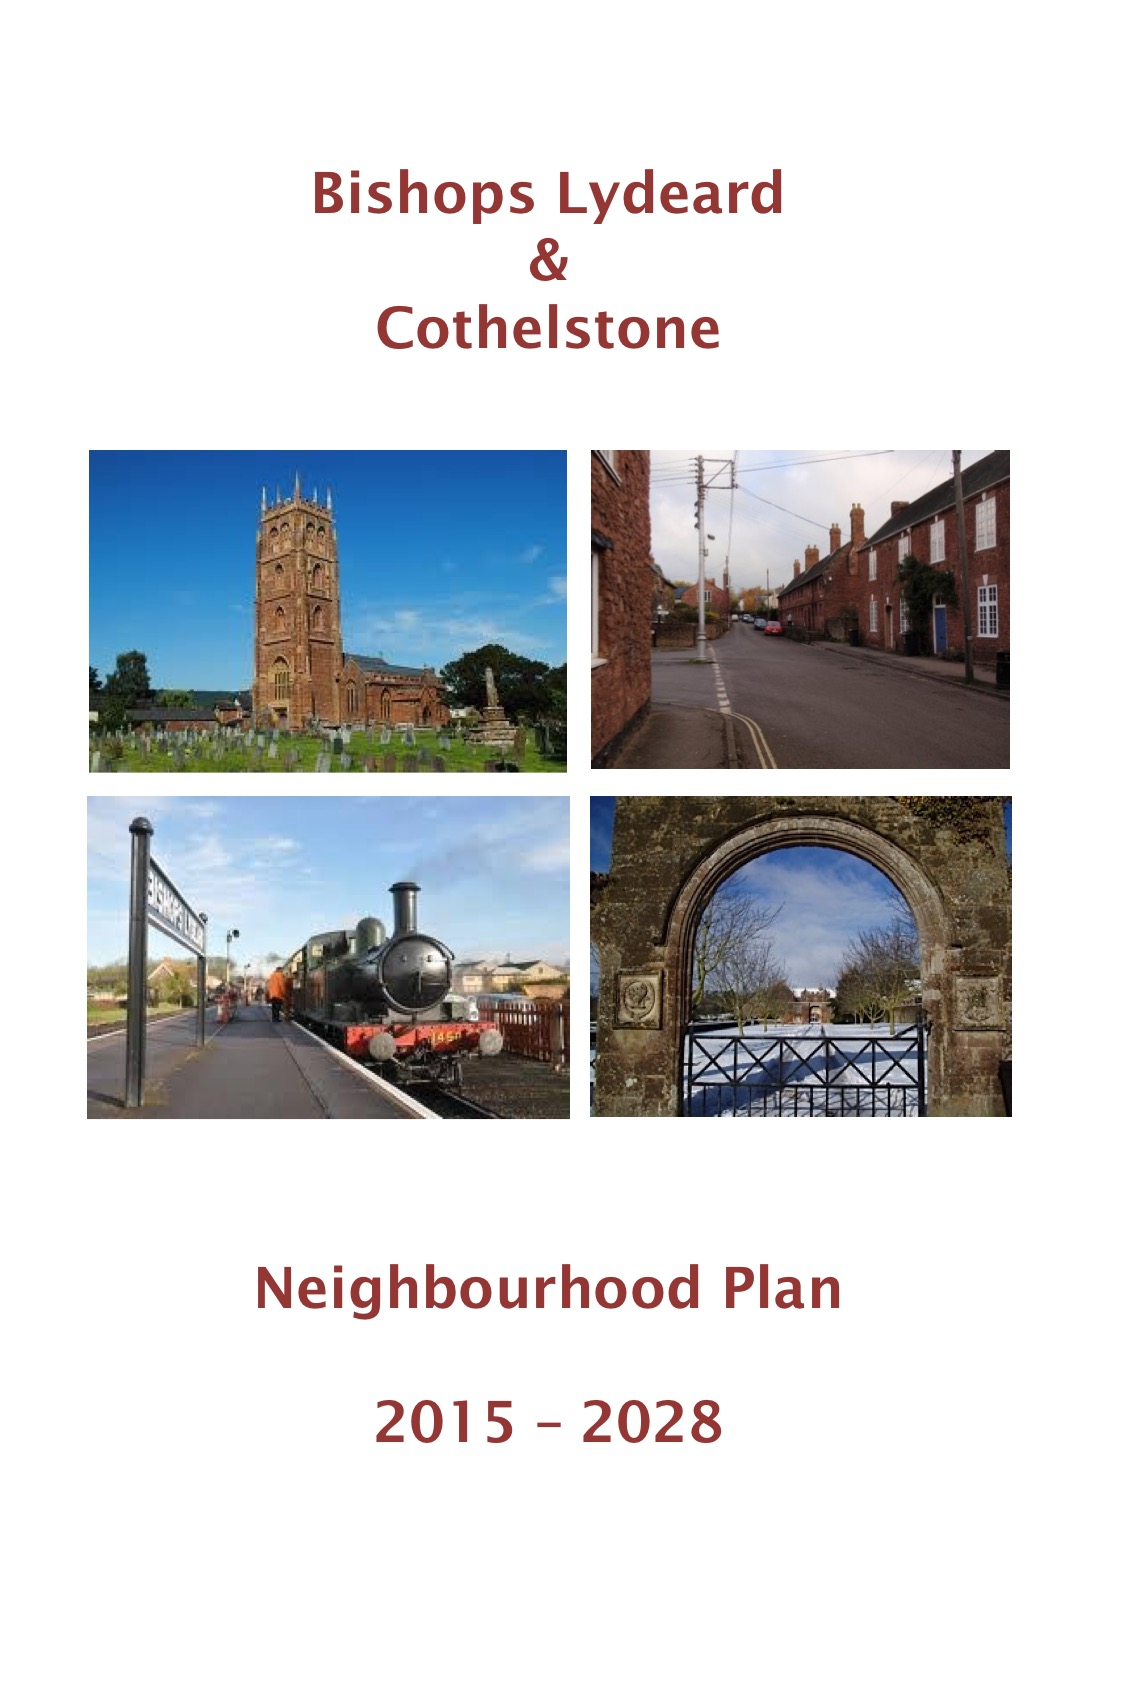 Bishops Lydeard & Cothelsone Neighbourhood Plan